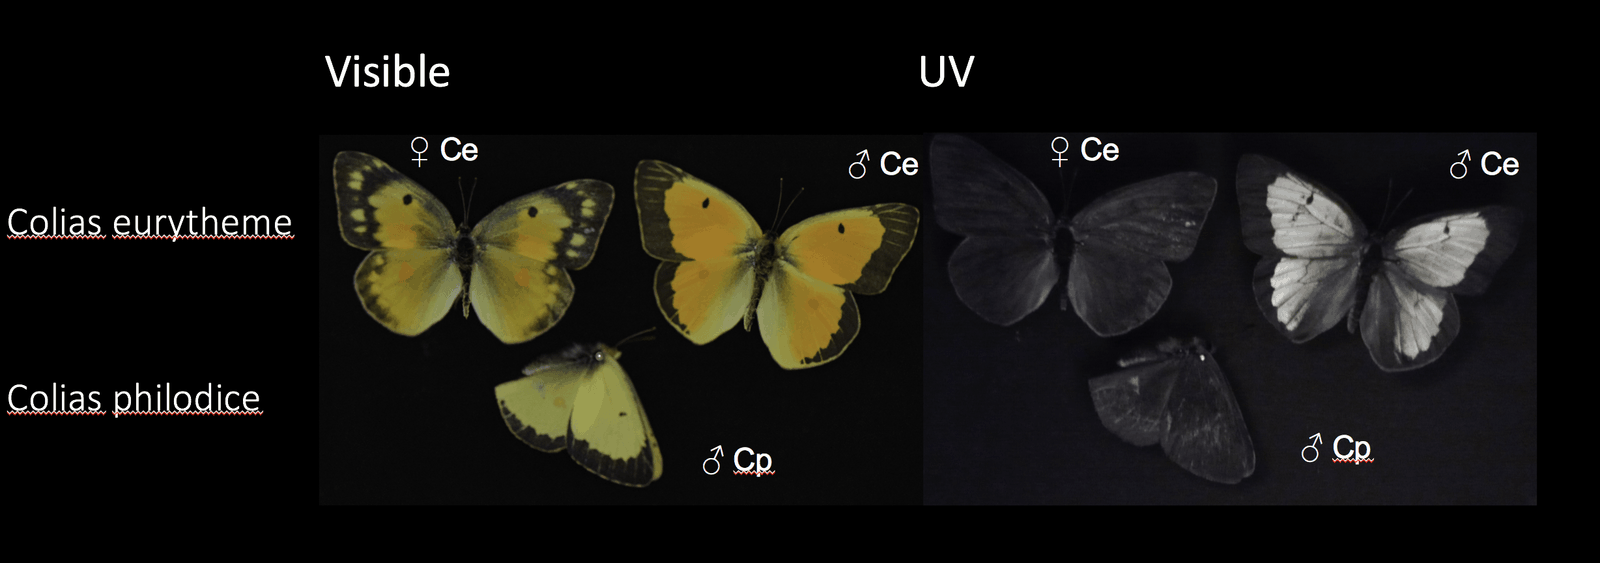 uv butterfly camera image iridescent marking ultraviolet